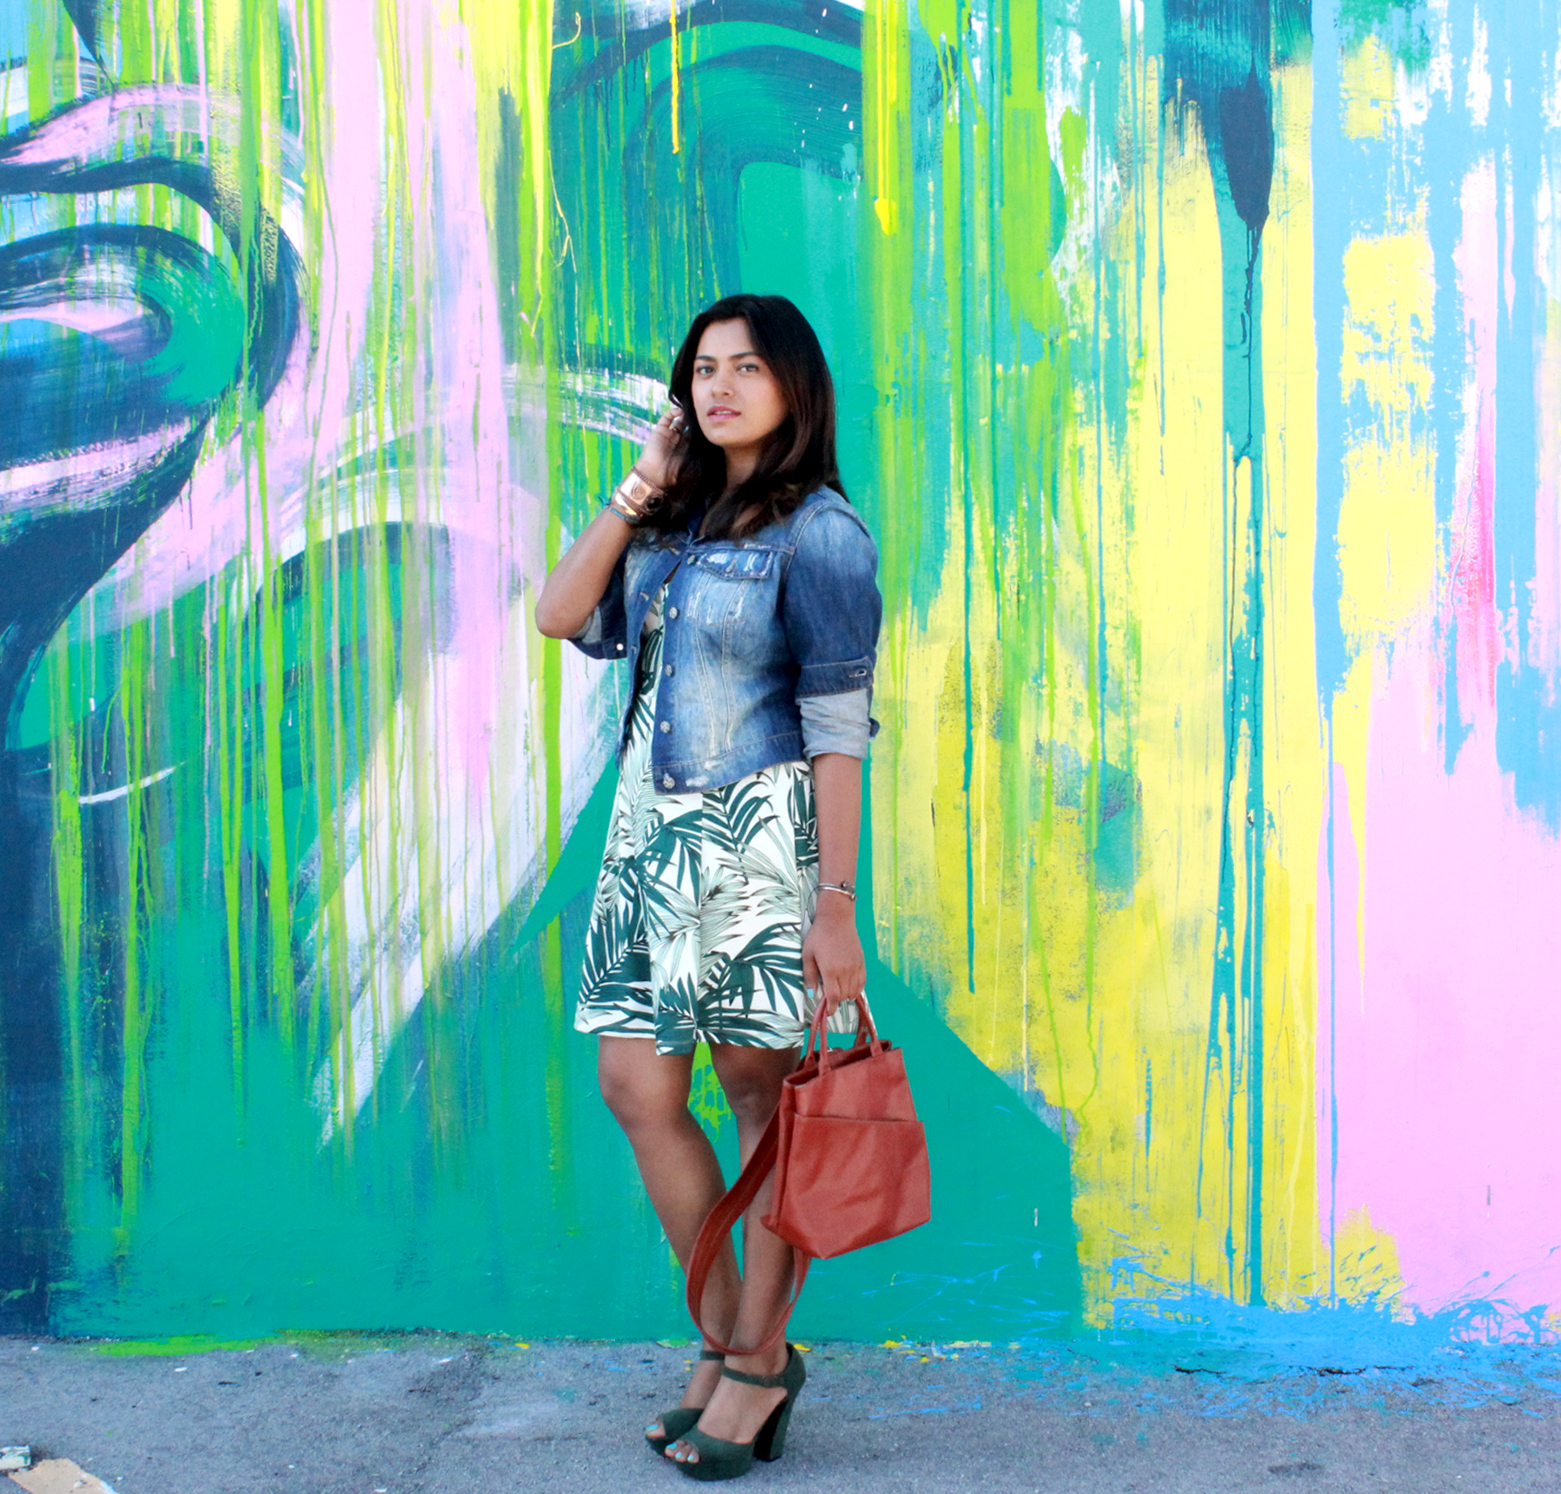 Miami Fashion Blogger Influencer Chic Stylista